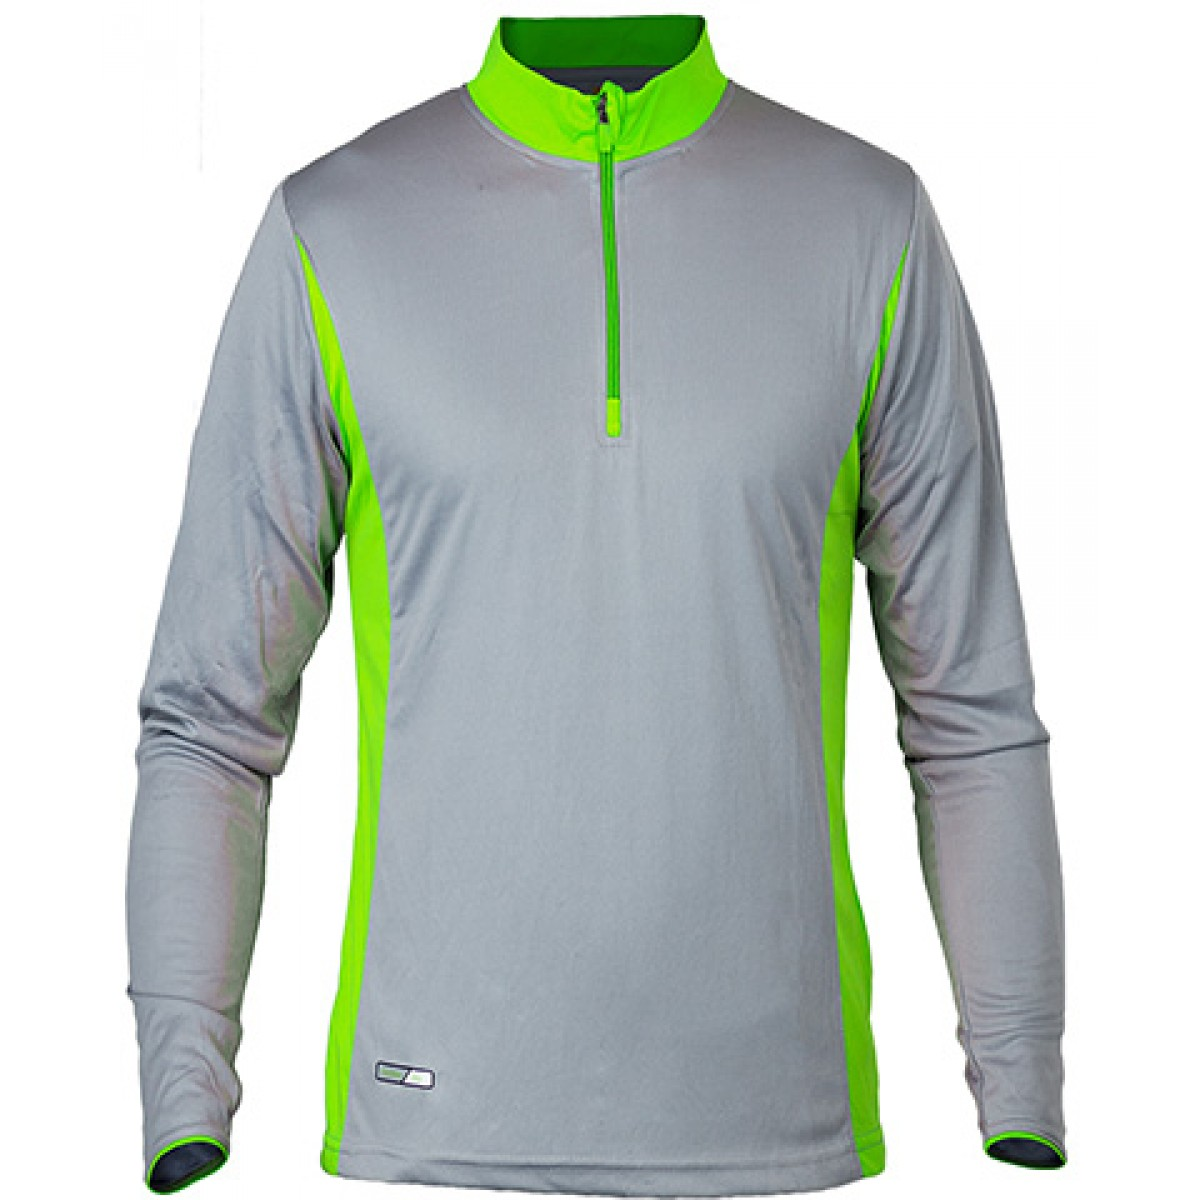 Long Sleeves 3/4 Zip Performance With Side Insert-Neon Green-2XL